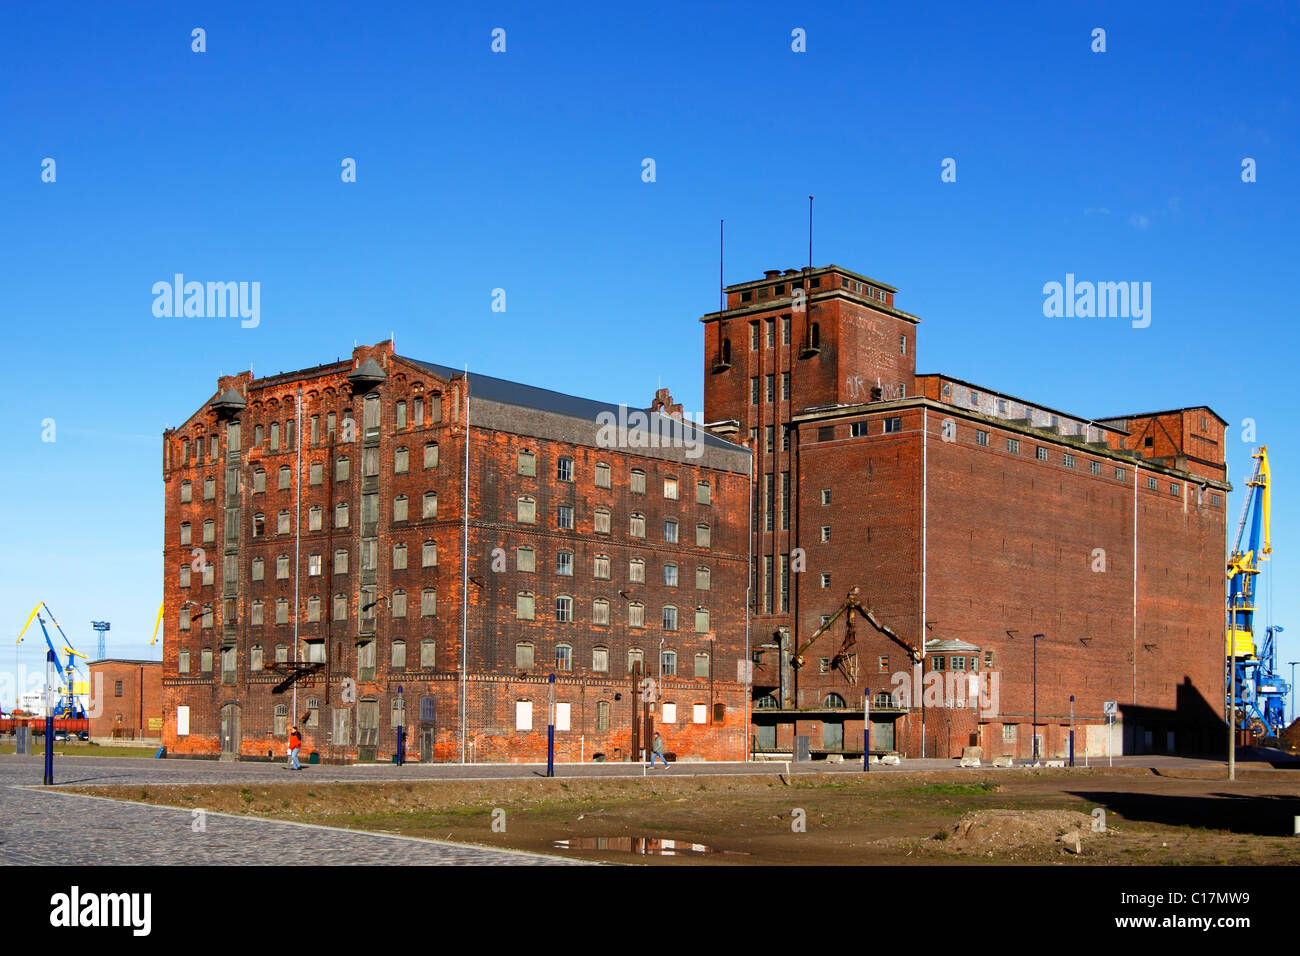 Historic storehouses in the old harbour, Hanseatic City of Wismar, UNESCO World Heritage Site, Mecklenburg-Western - Stock Image